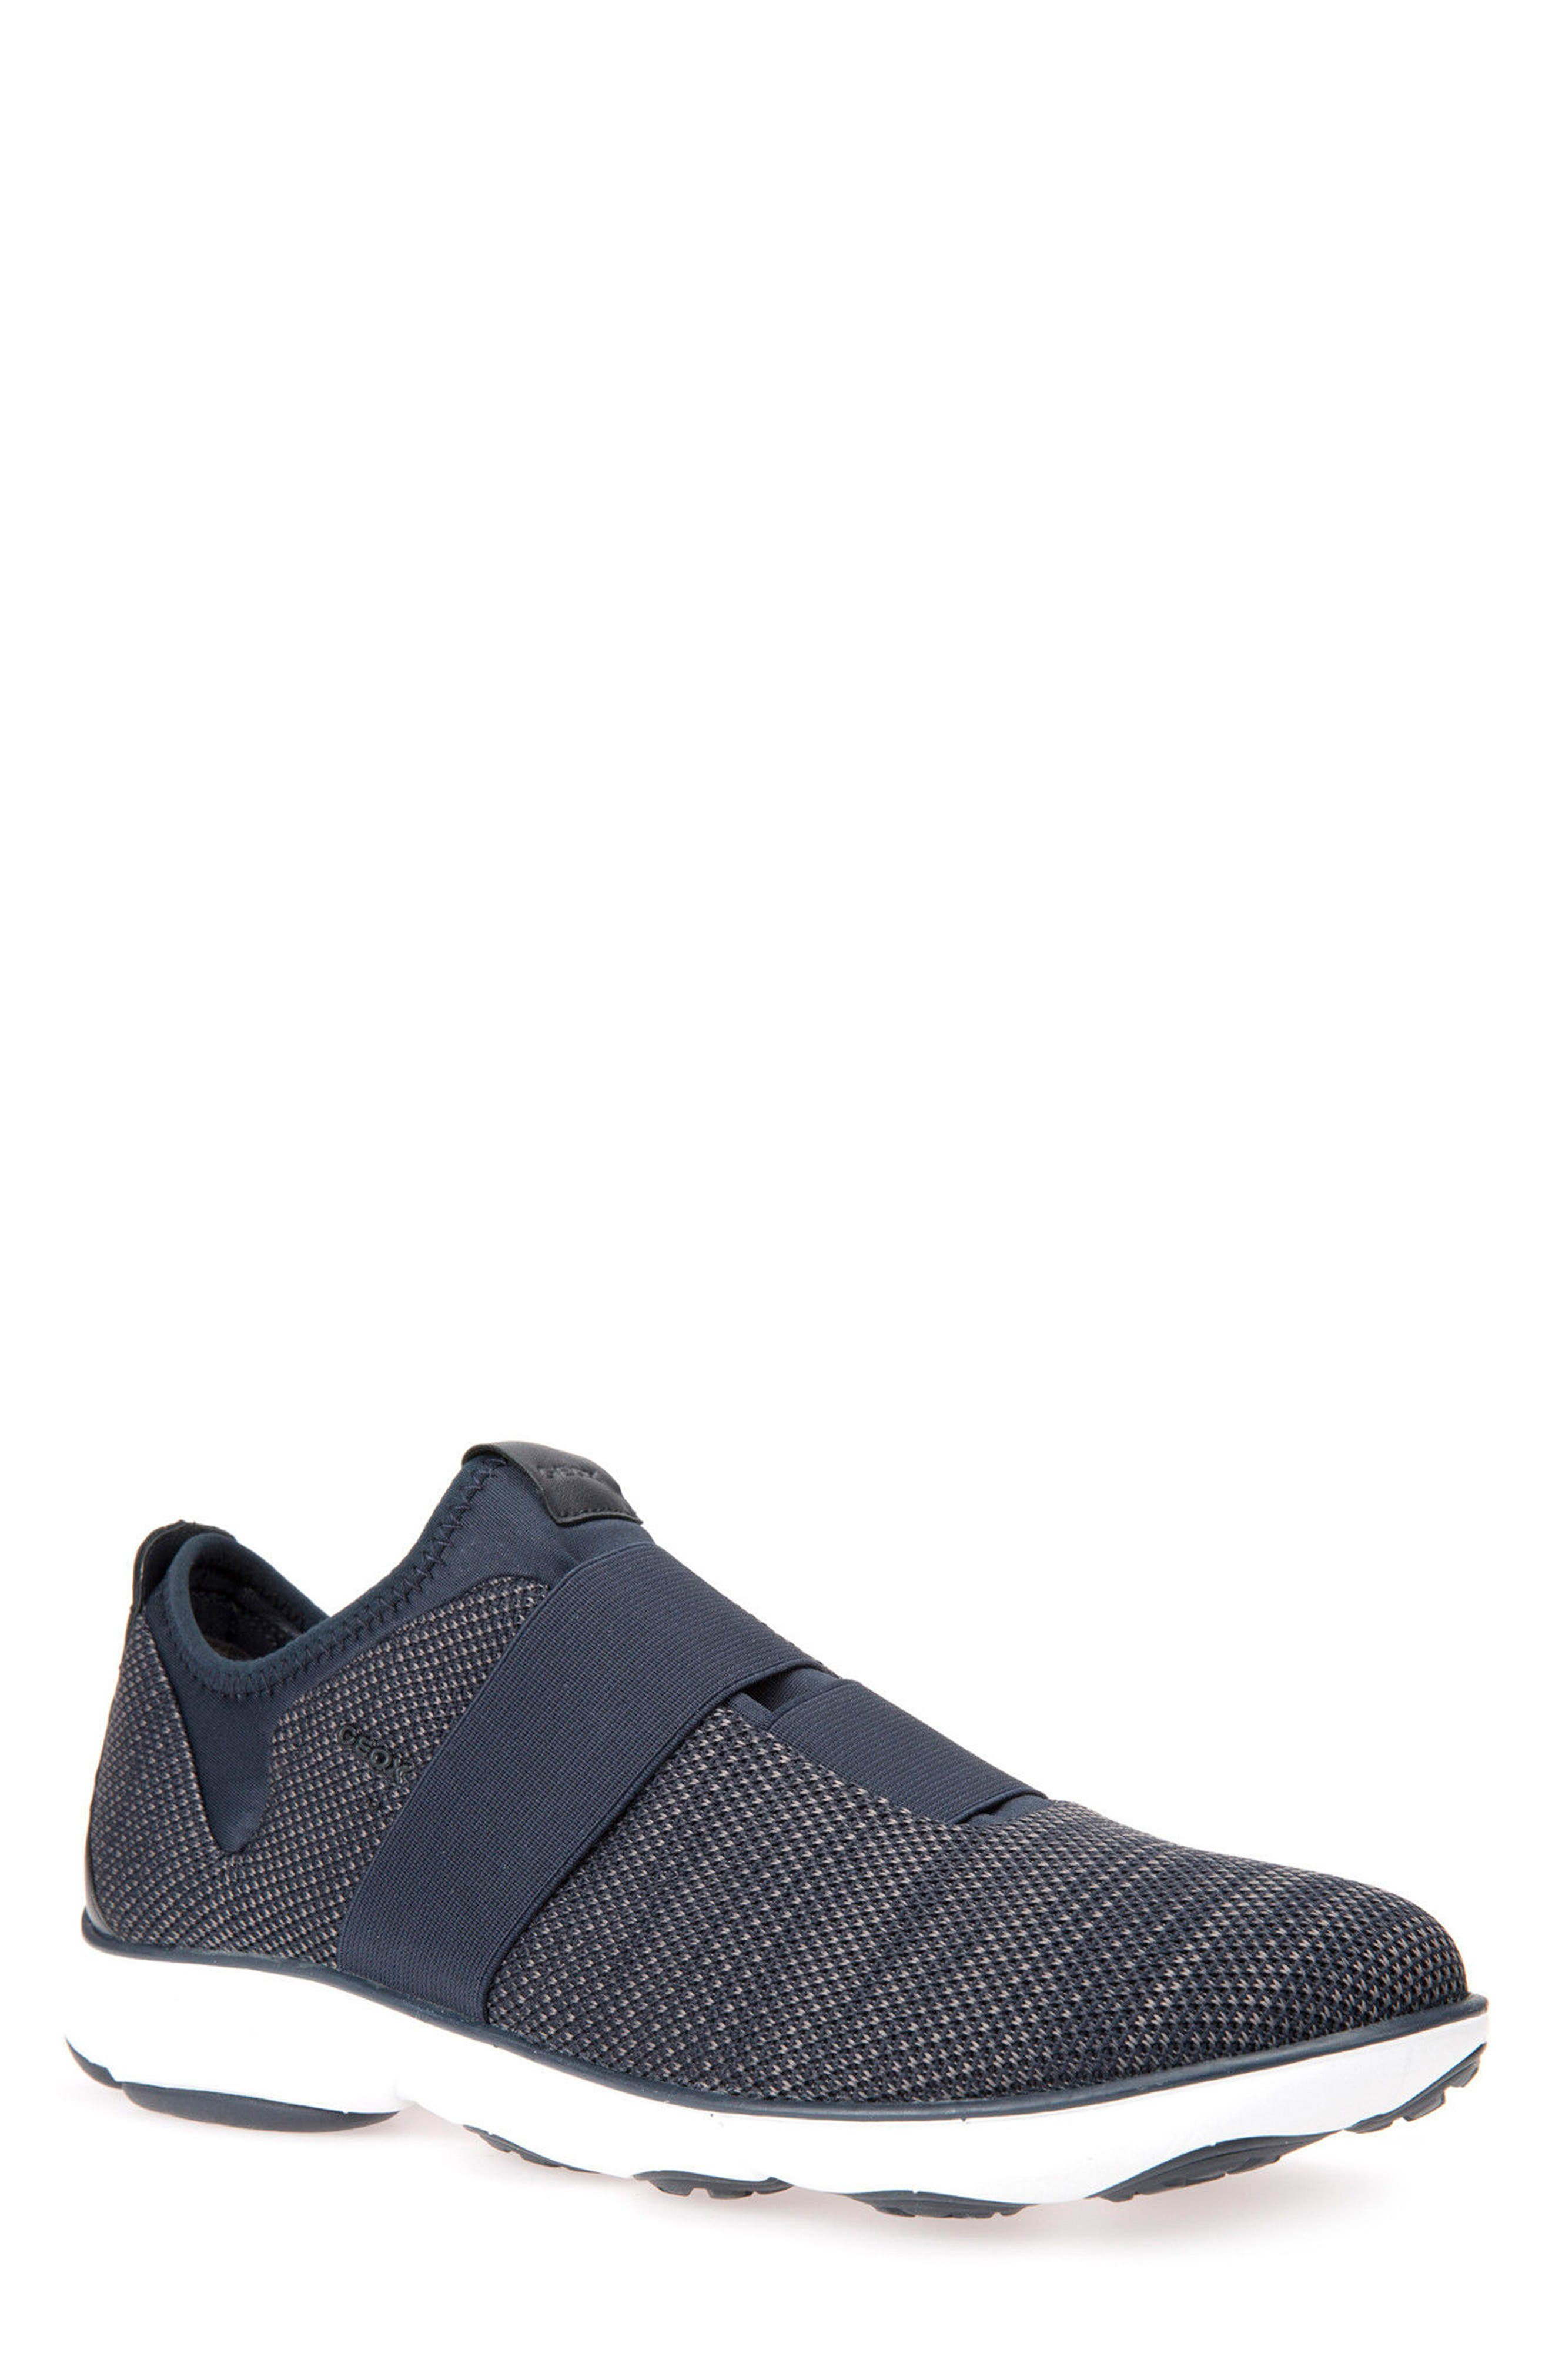 Nebula 45 Banded Slip-On Sneaker,                             Main thumbnail 1, color,                             Navy